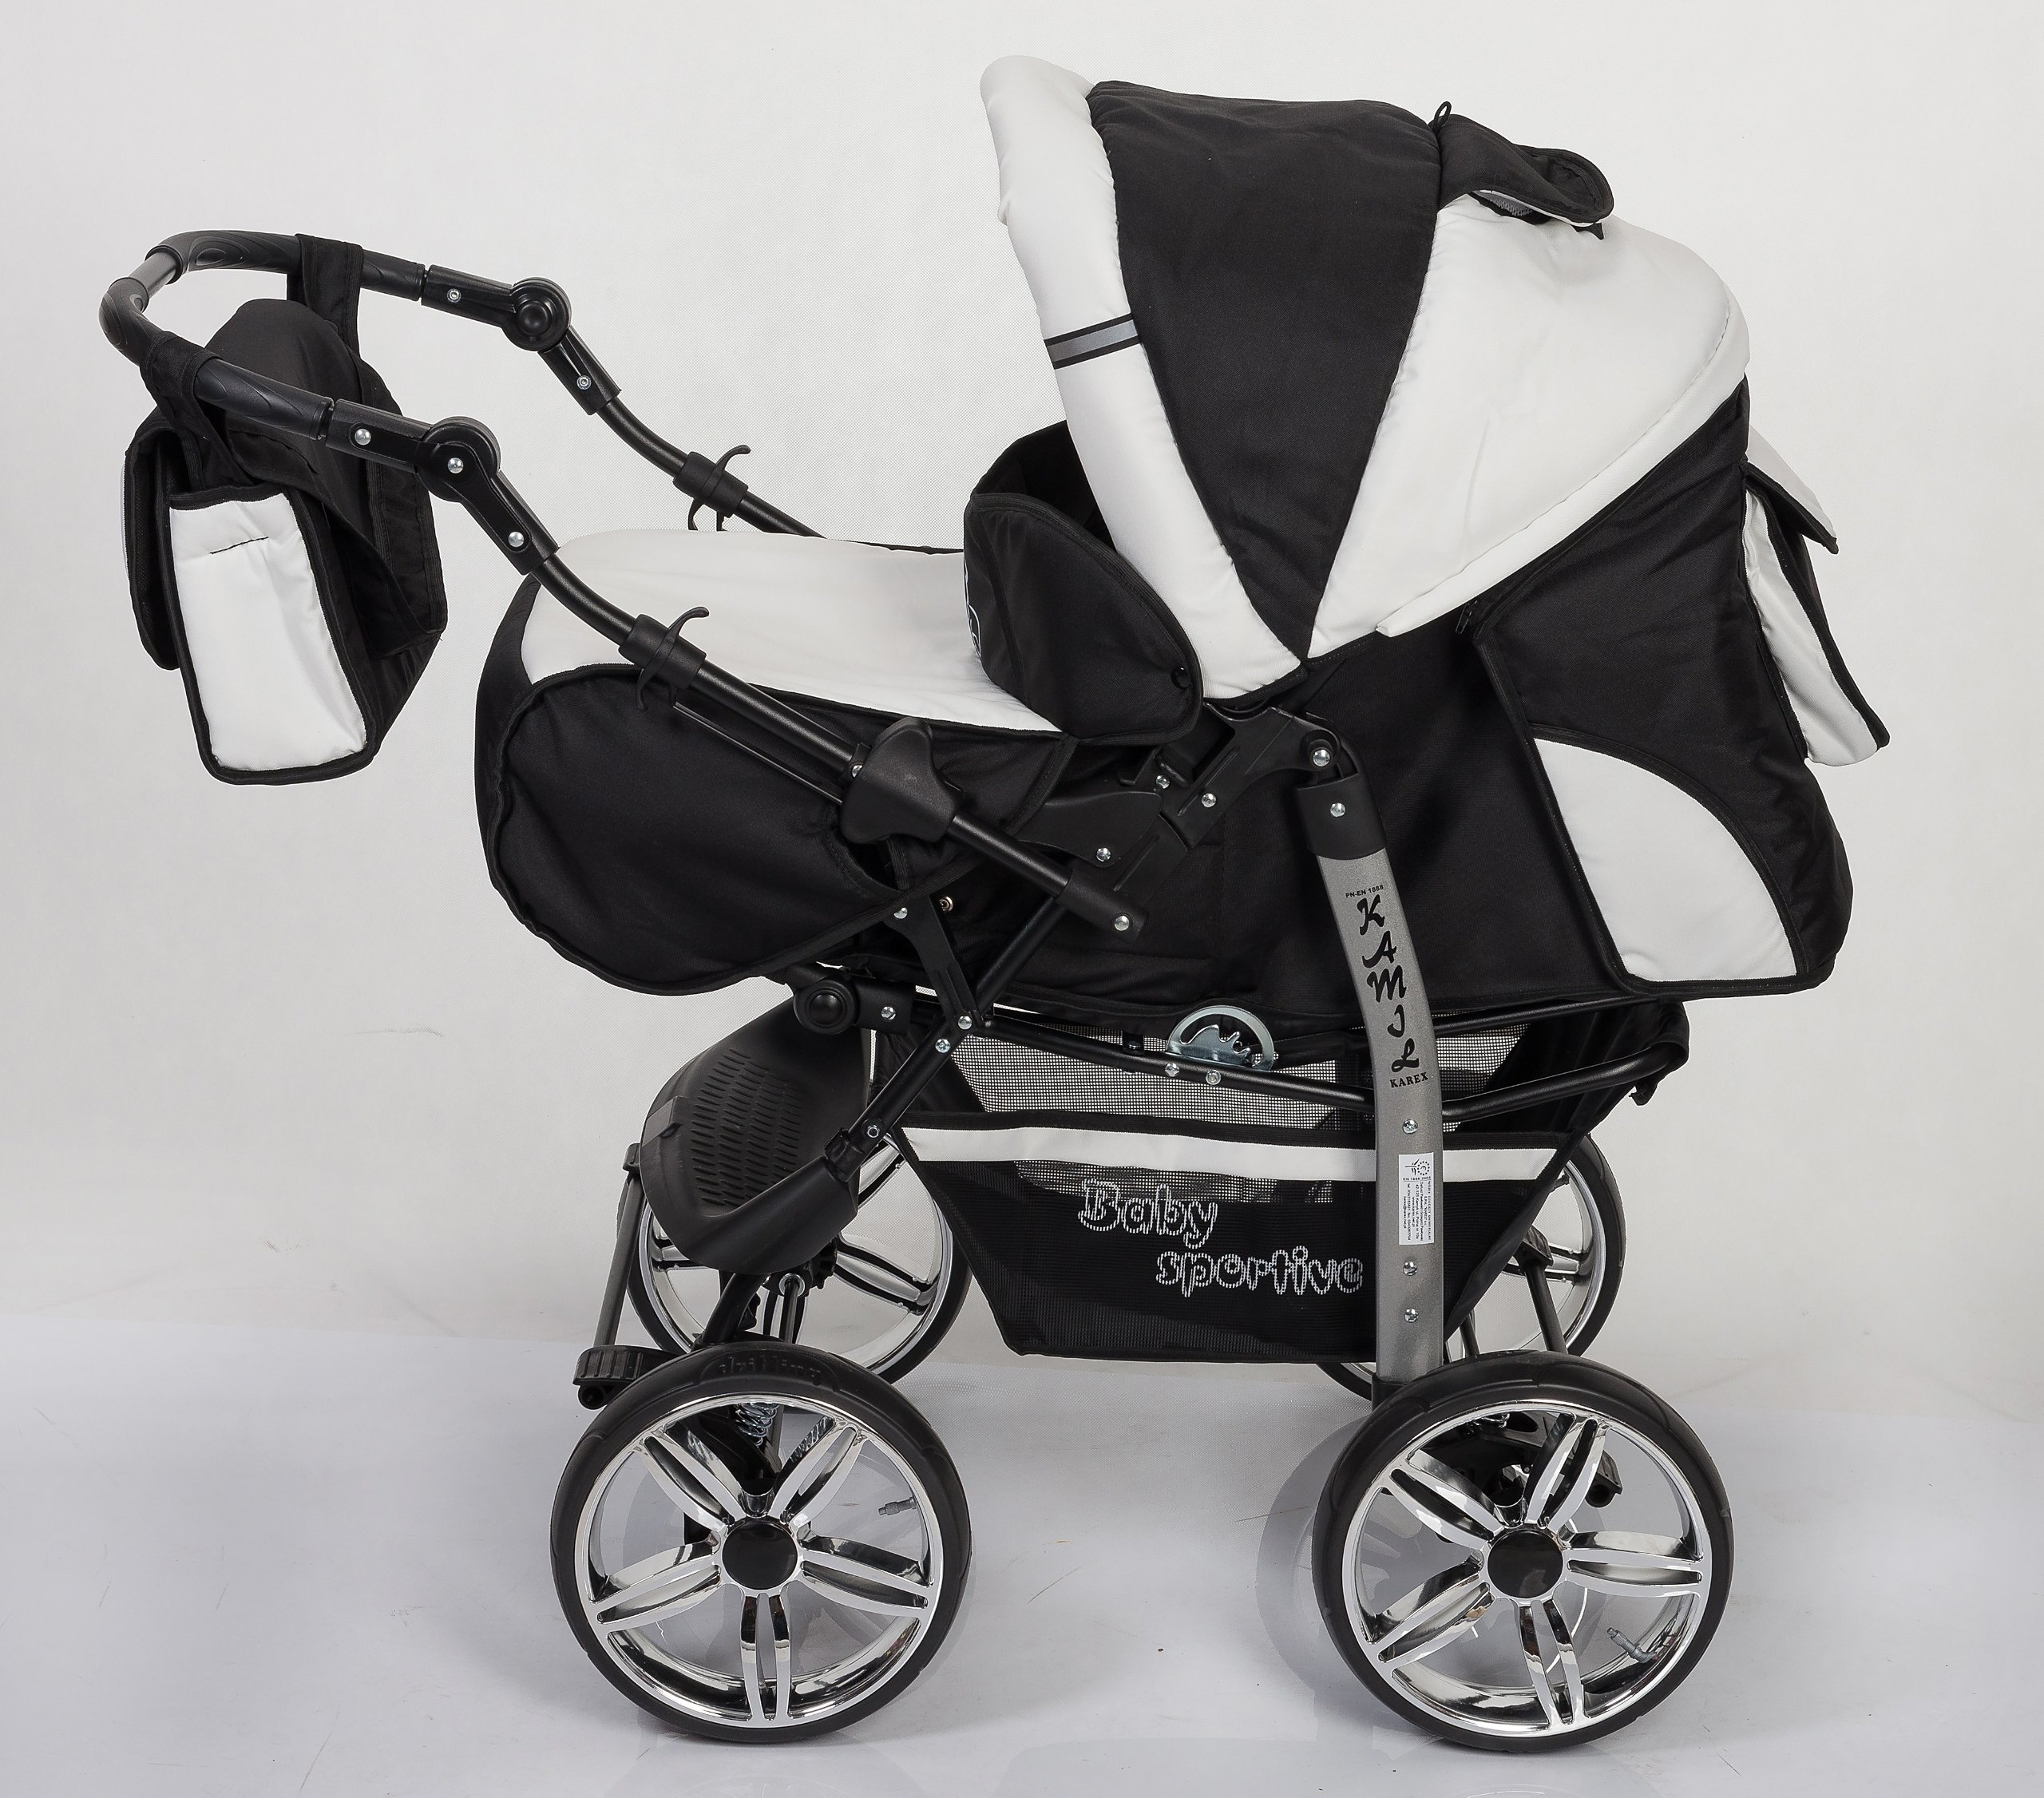 3-in-1 Travel System with Baby Pram, Car Seat, Pushchair & Accessories, Black & White   2